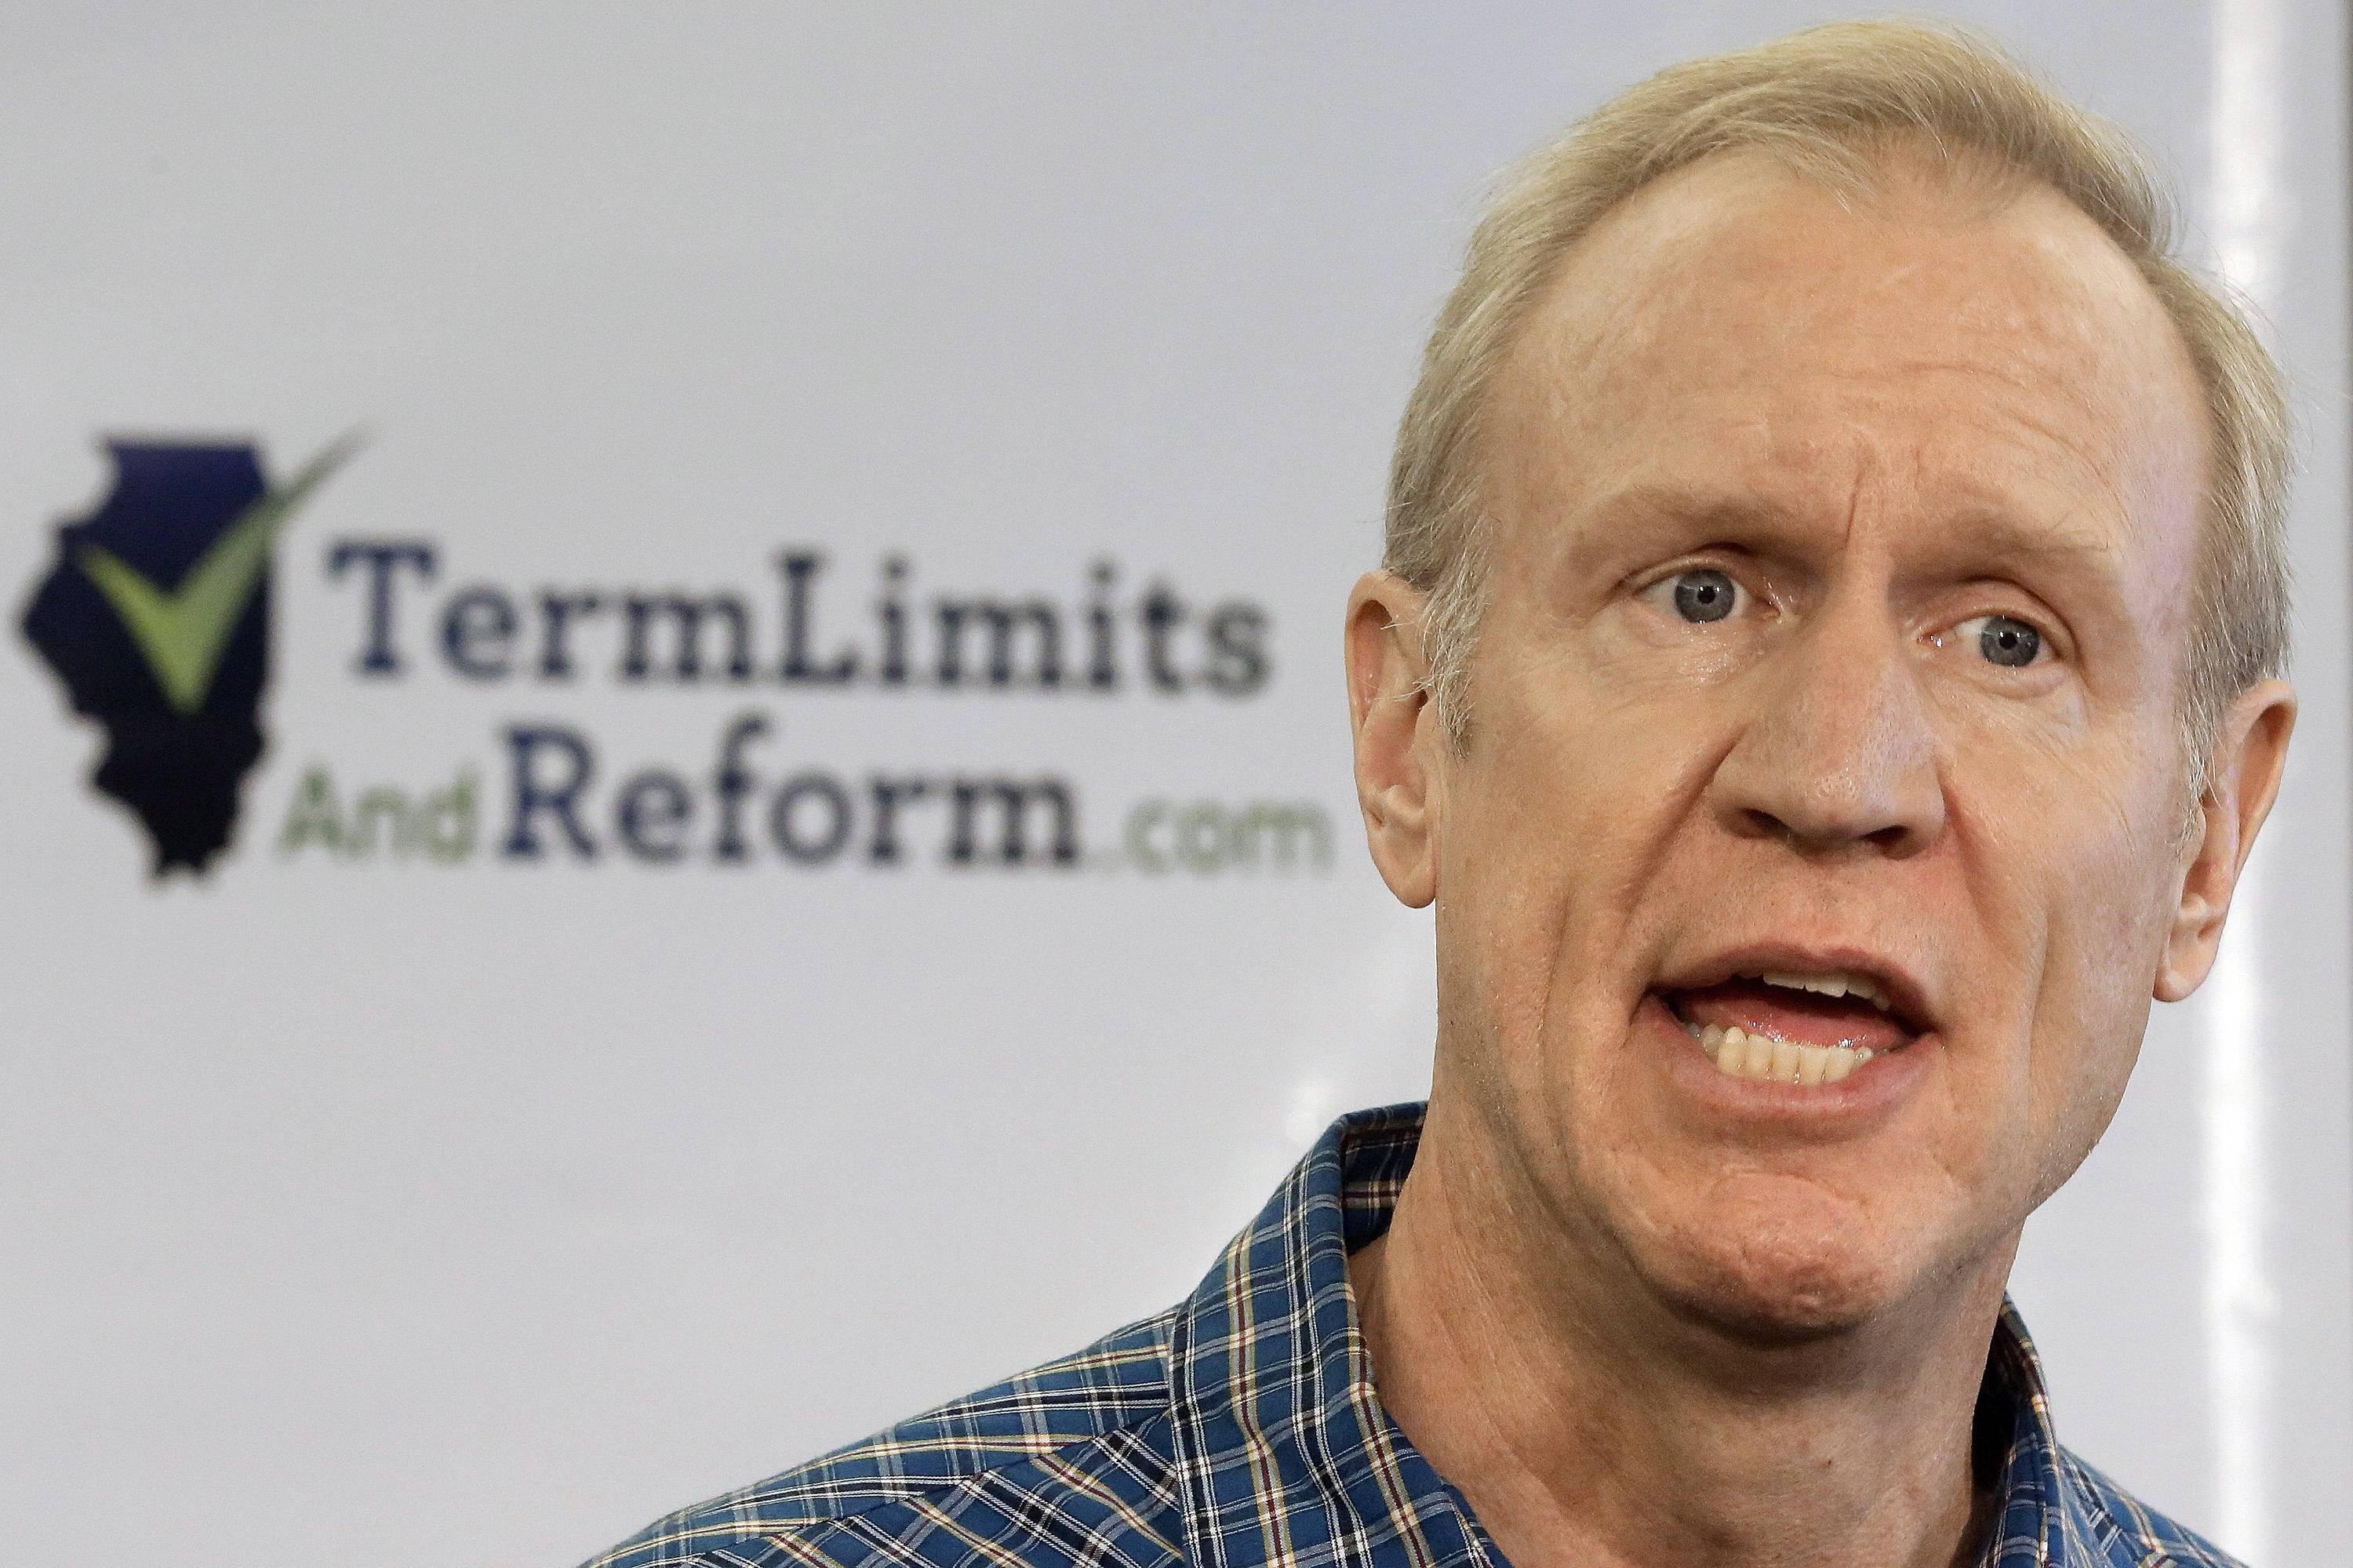 Republican gubernatorial candidate Bruce Rauner speaks with reporters during a term limits news conference Tuesday in Springfield.